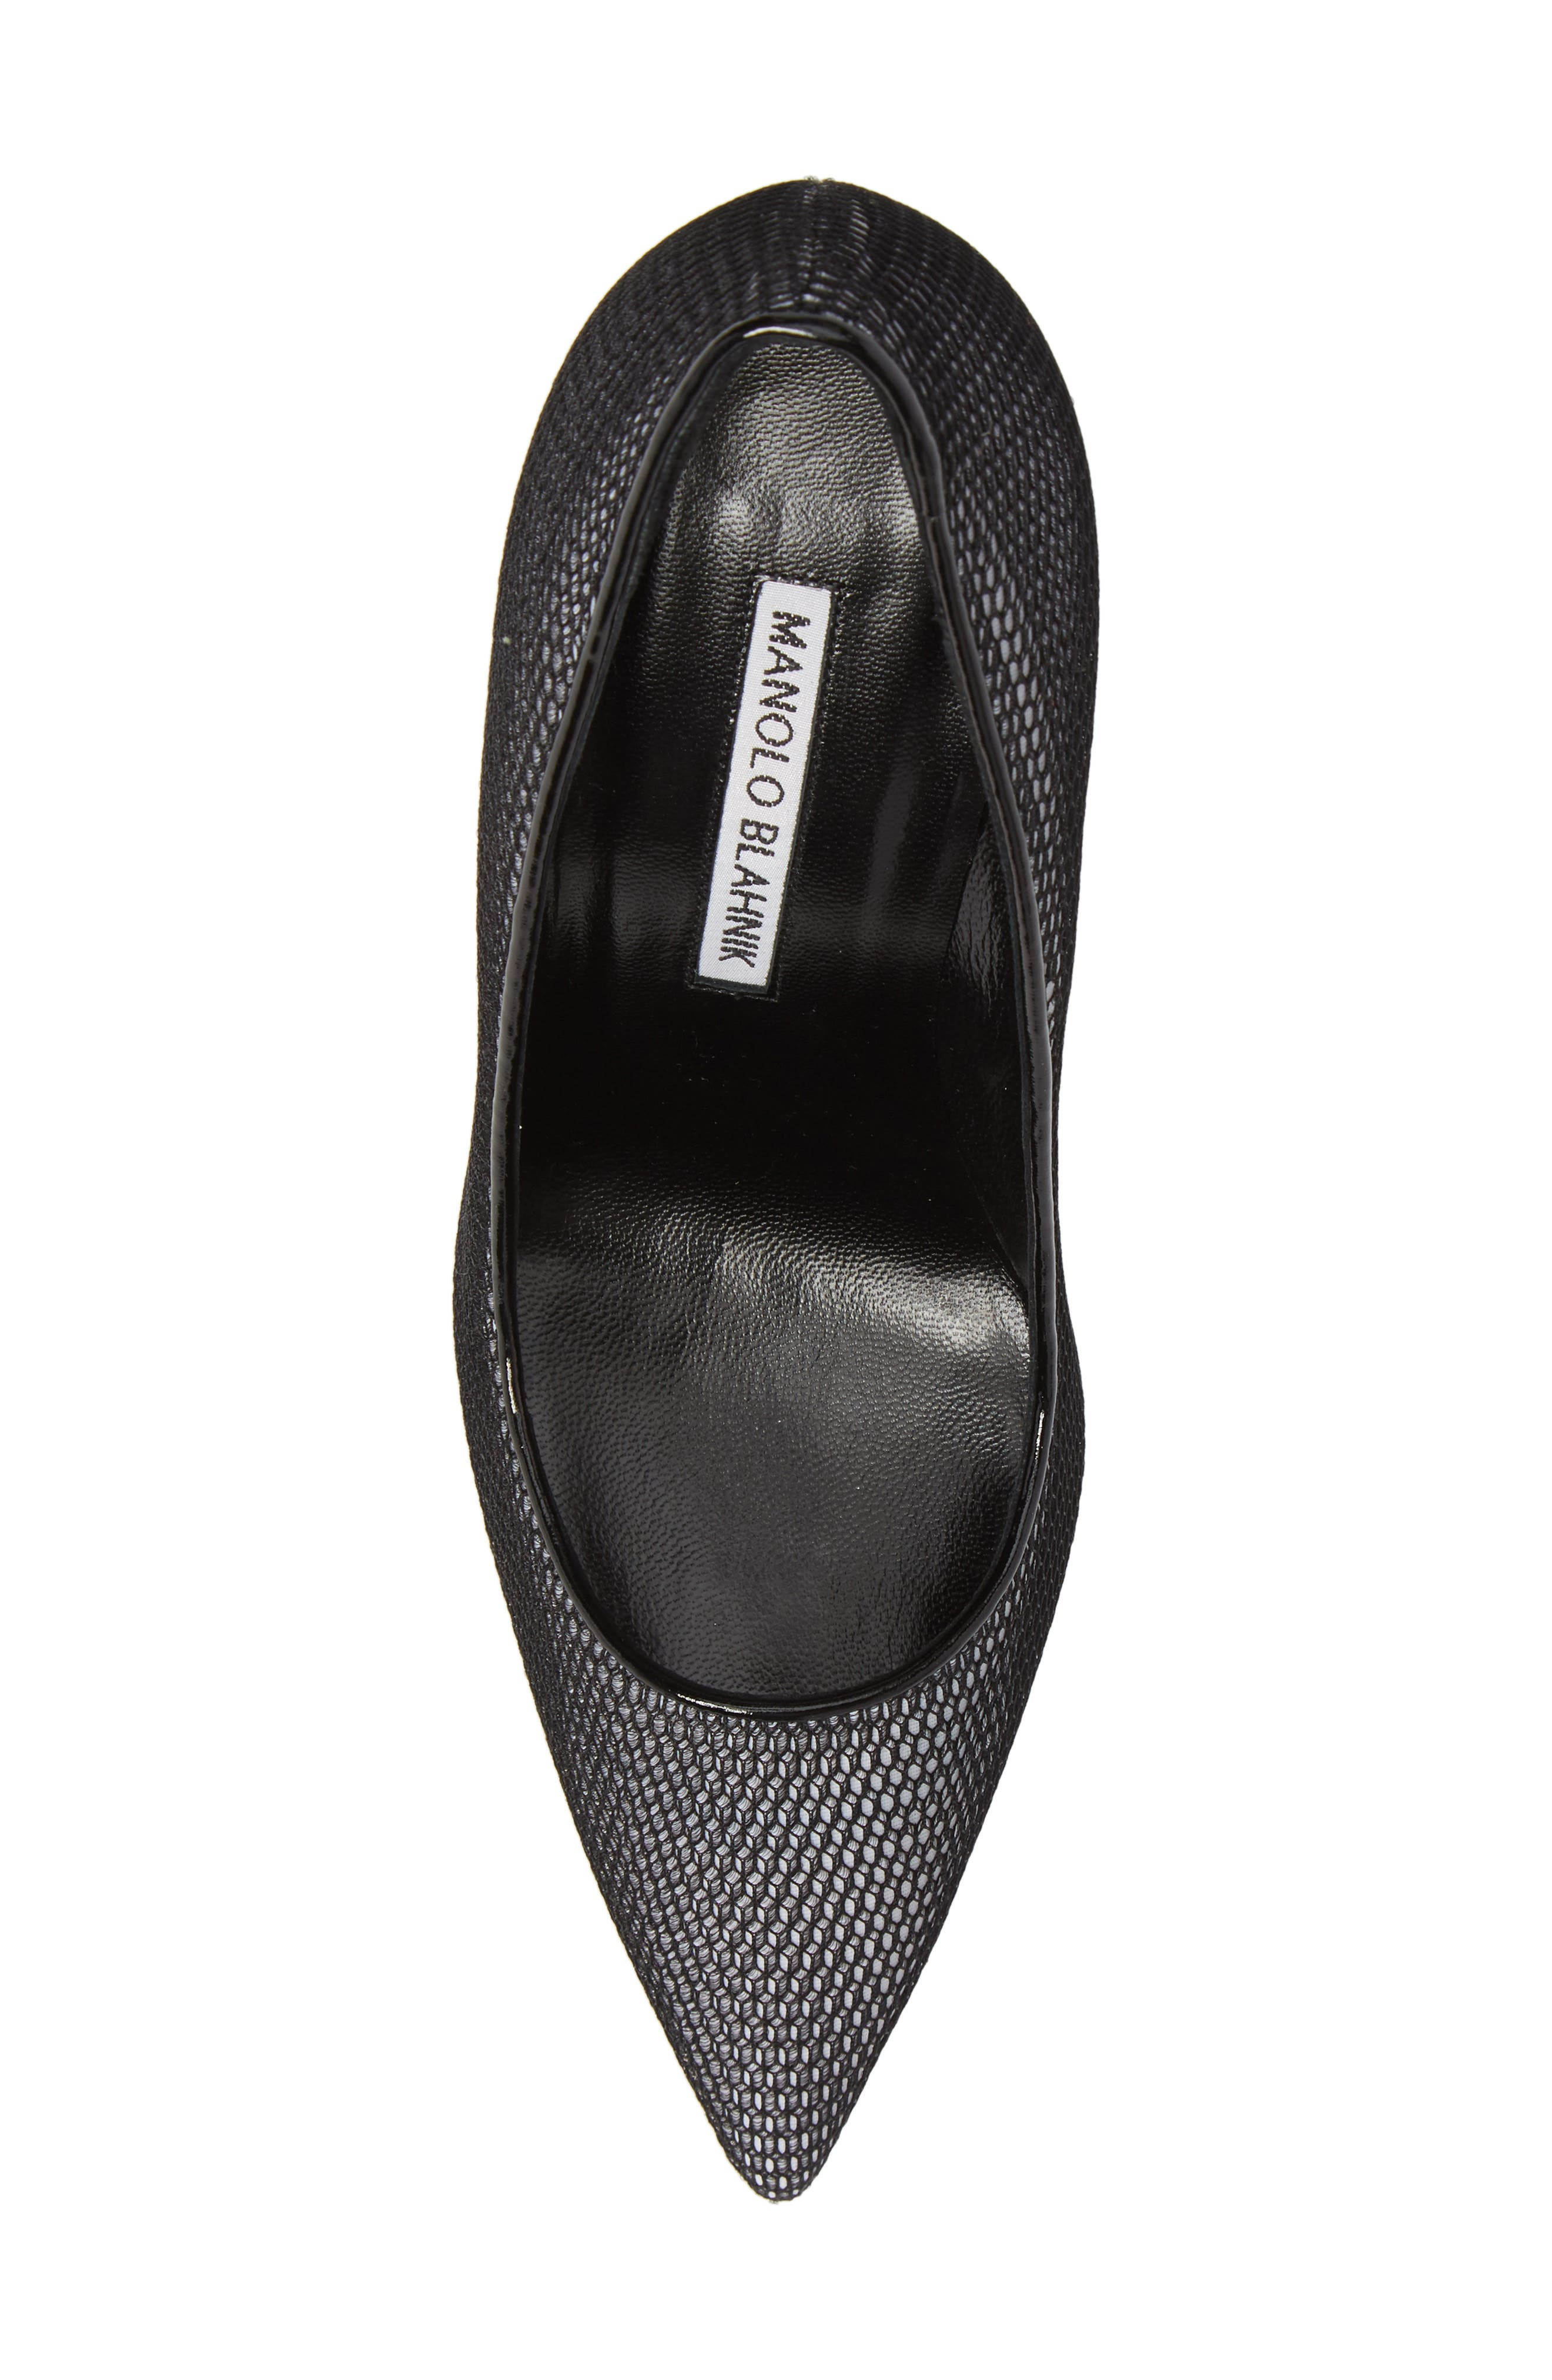 BB Pointy Toe Pump,                             Alternate thumbnail 5, color,